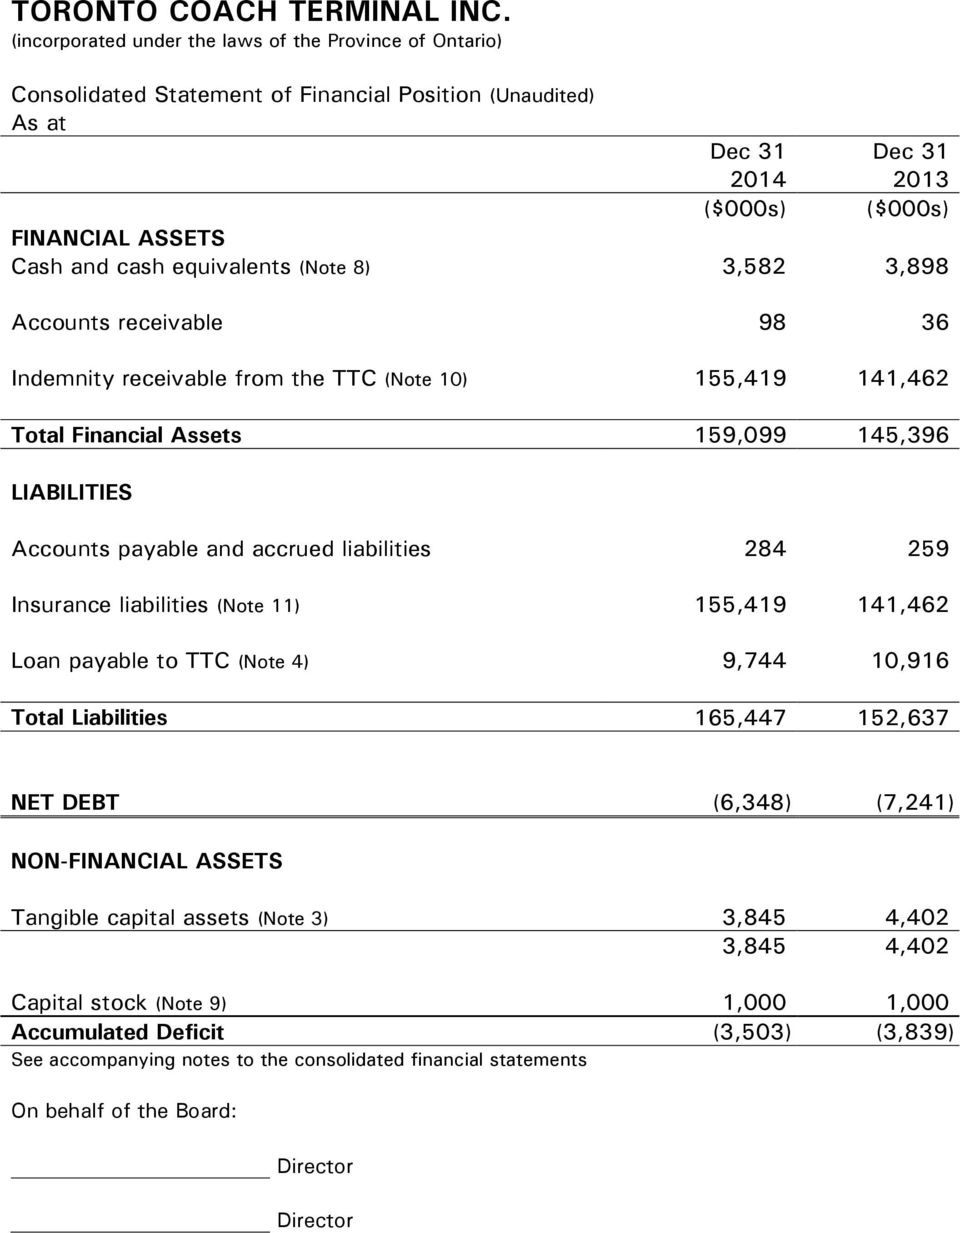 Insurance liabilities (Note 11) 155,419 141,462 Loan payable to TTC (Note 4) 9,744 10,916 Total Liabilities 165,447 152,637 NET DEBT (6,348) (7,241) NON-FINANCIAL ASSETS Tangible capital assets (Note